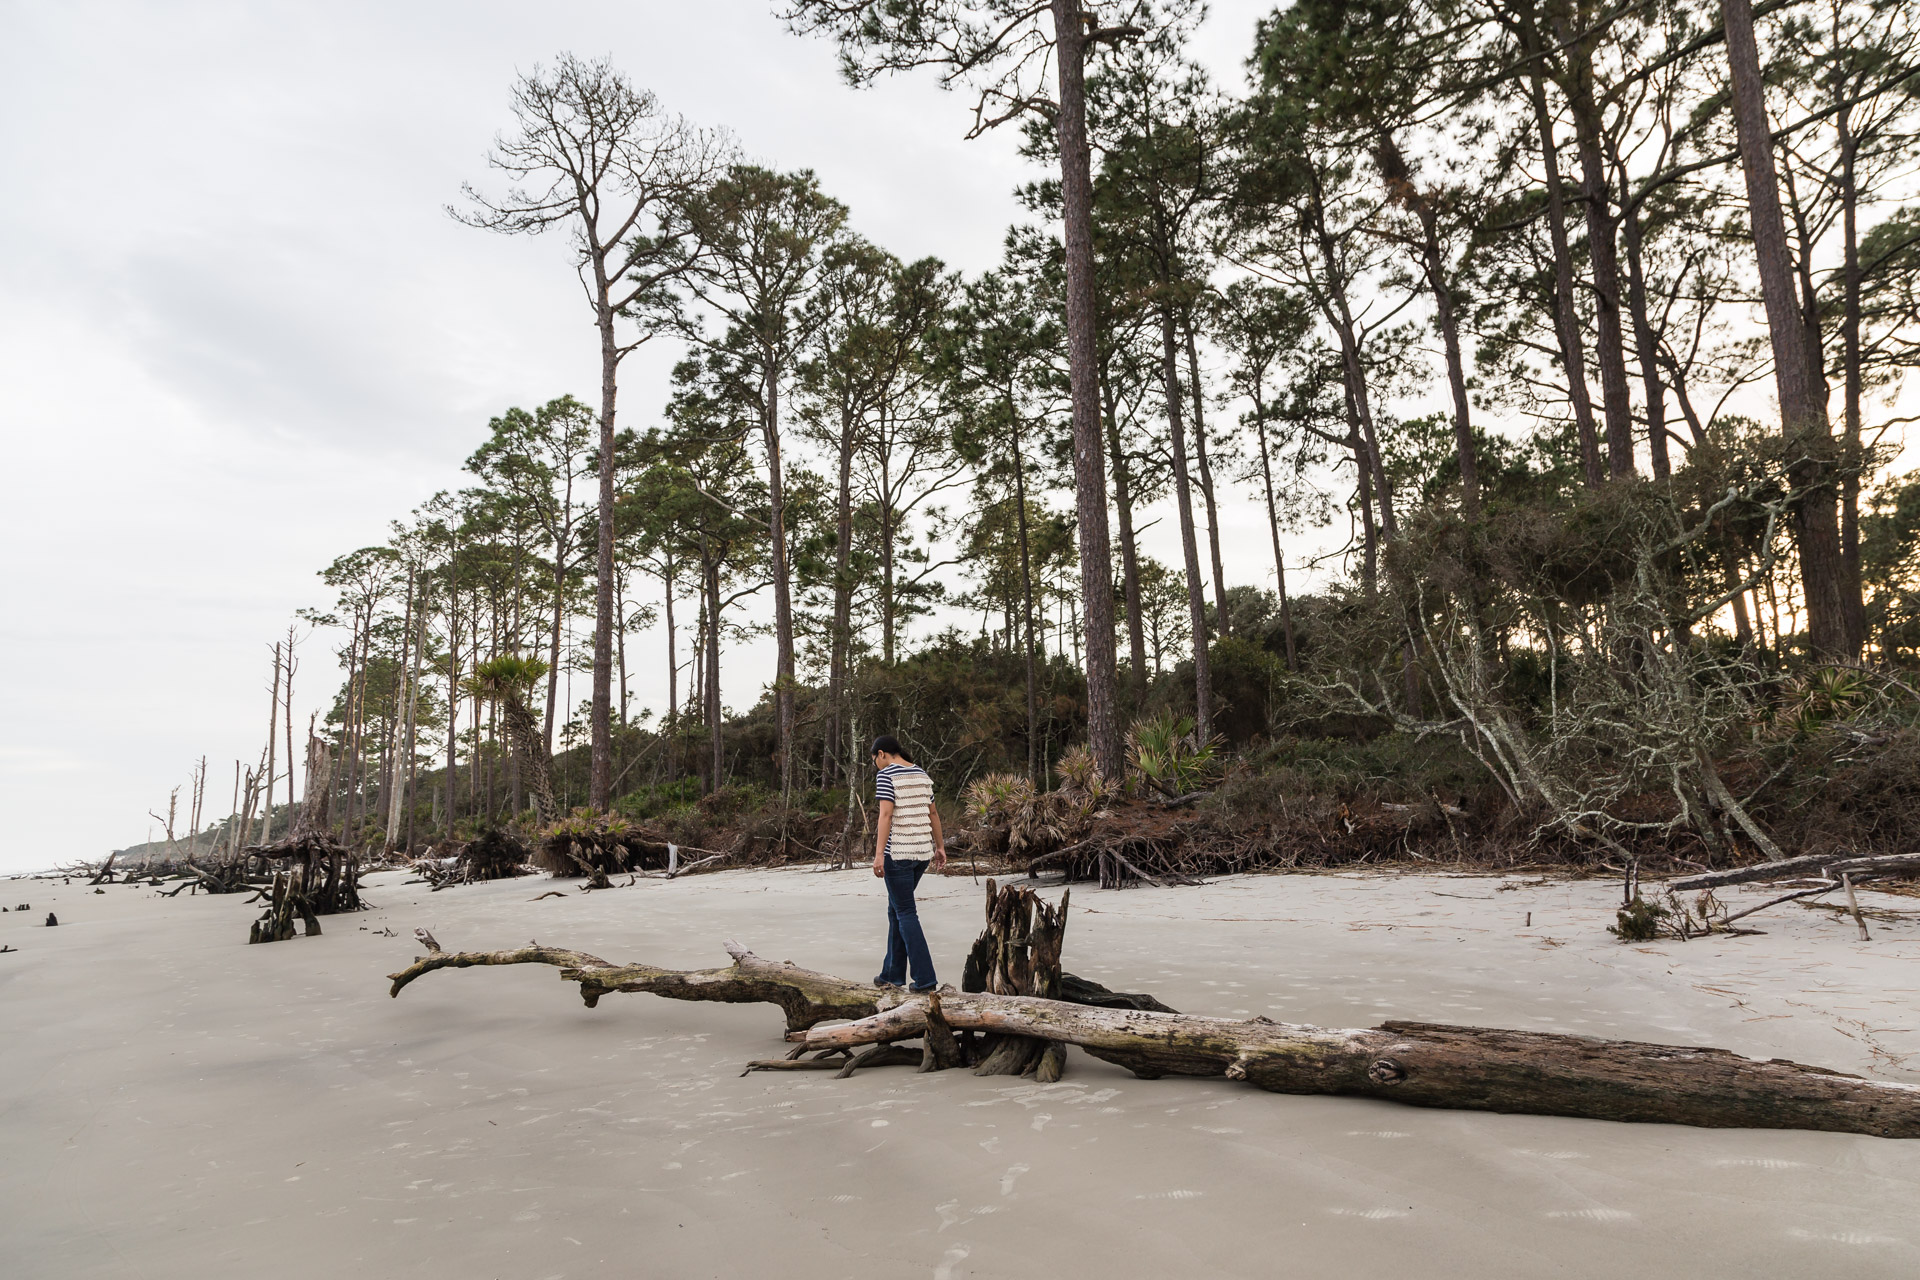 Drifting Along Driftwood Beach (walking tree)